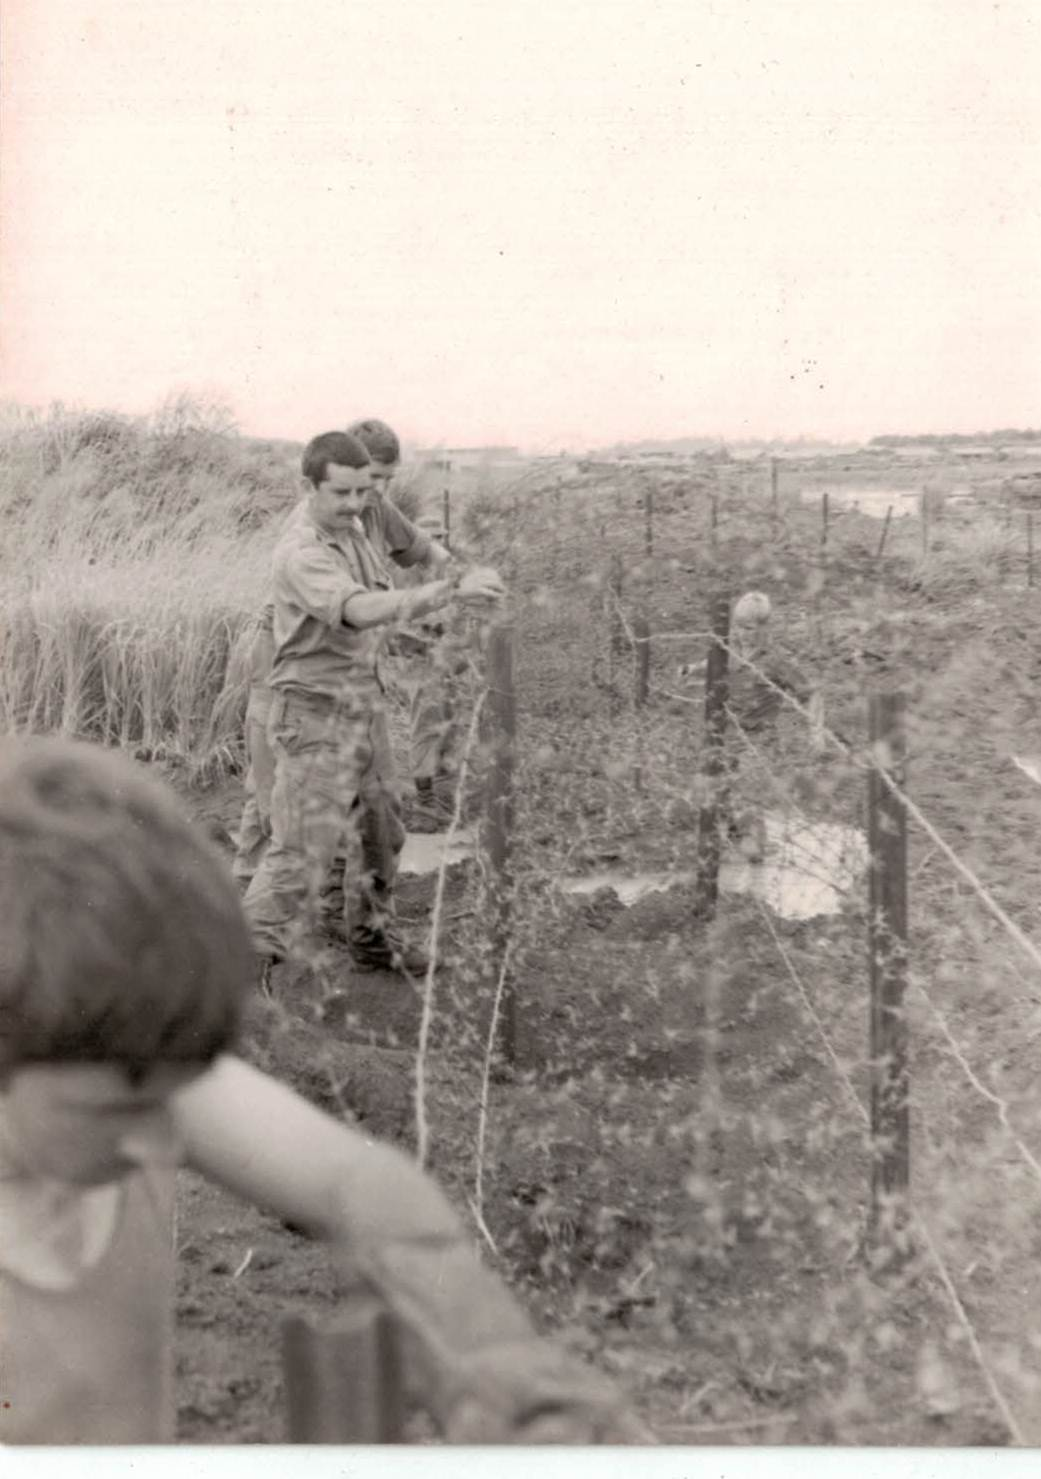 Sappers of 1 FD SQN GP repairing perimeter wire at Nui Dat 1971.